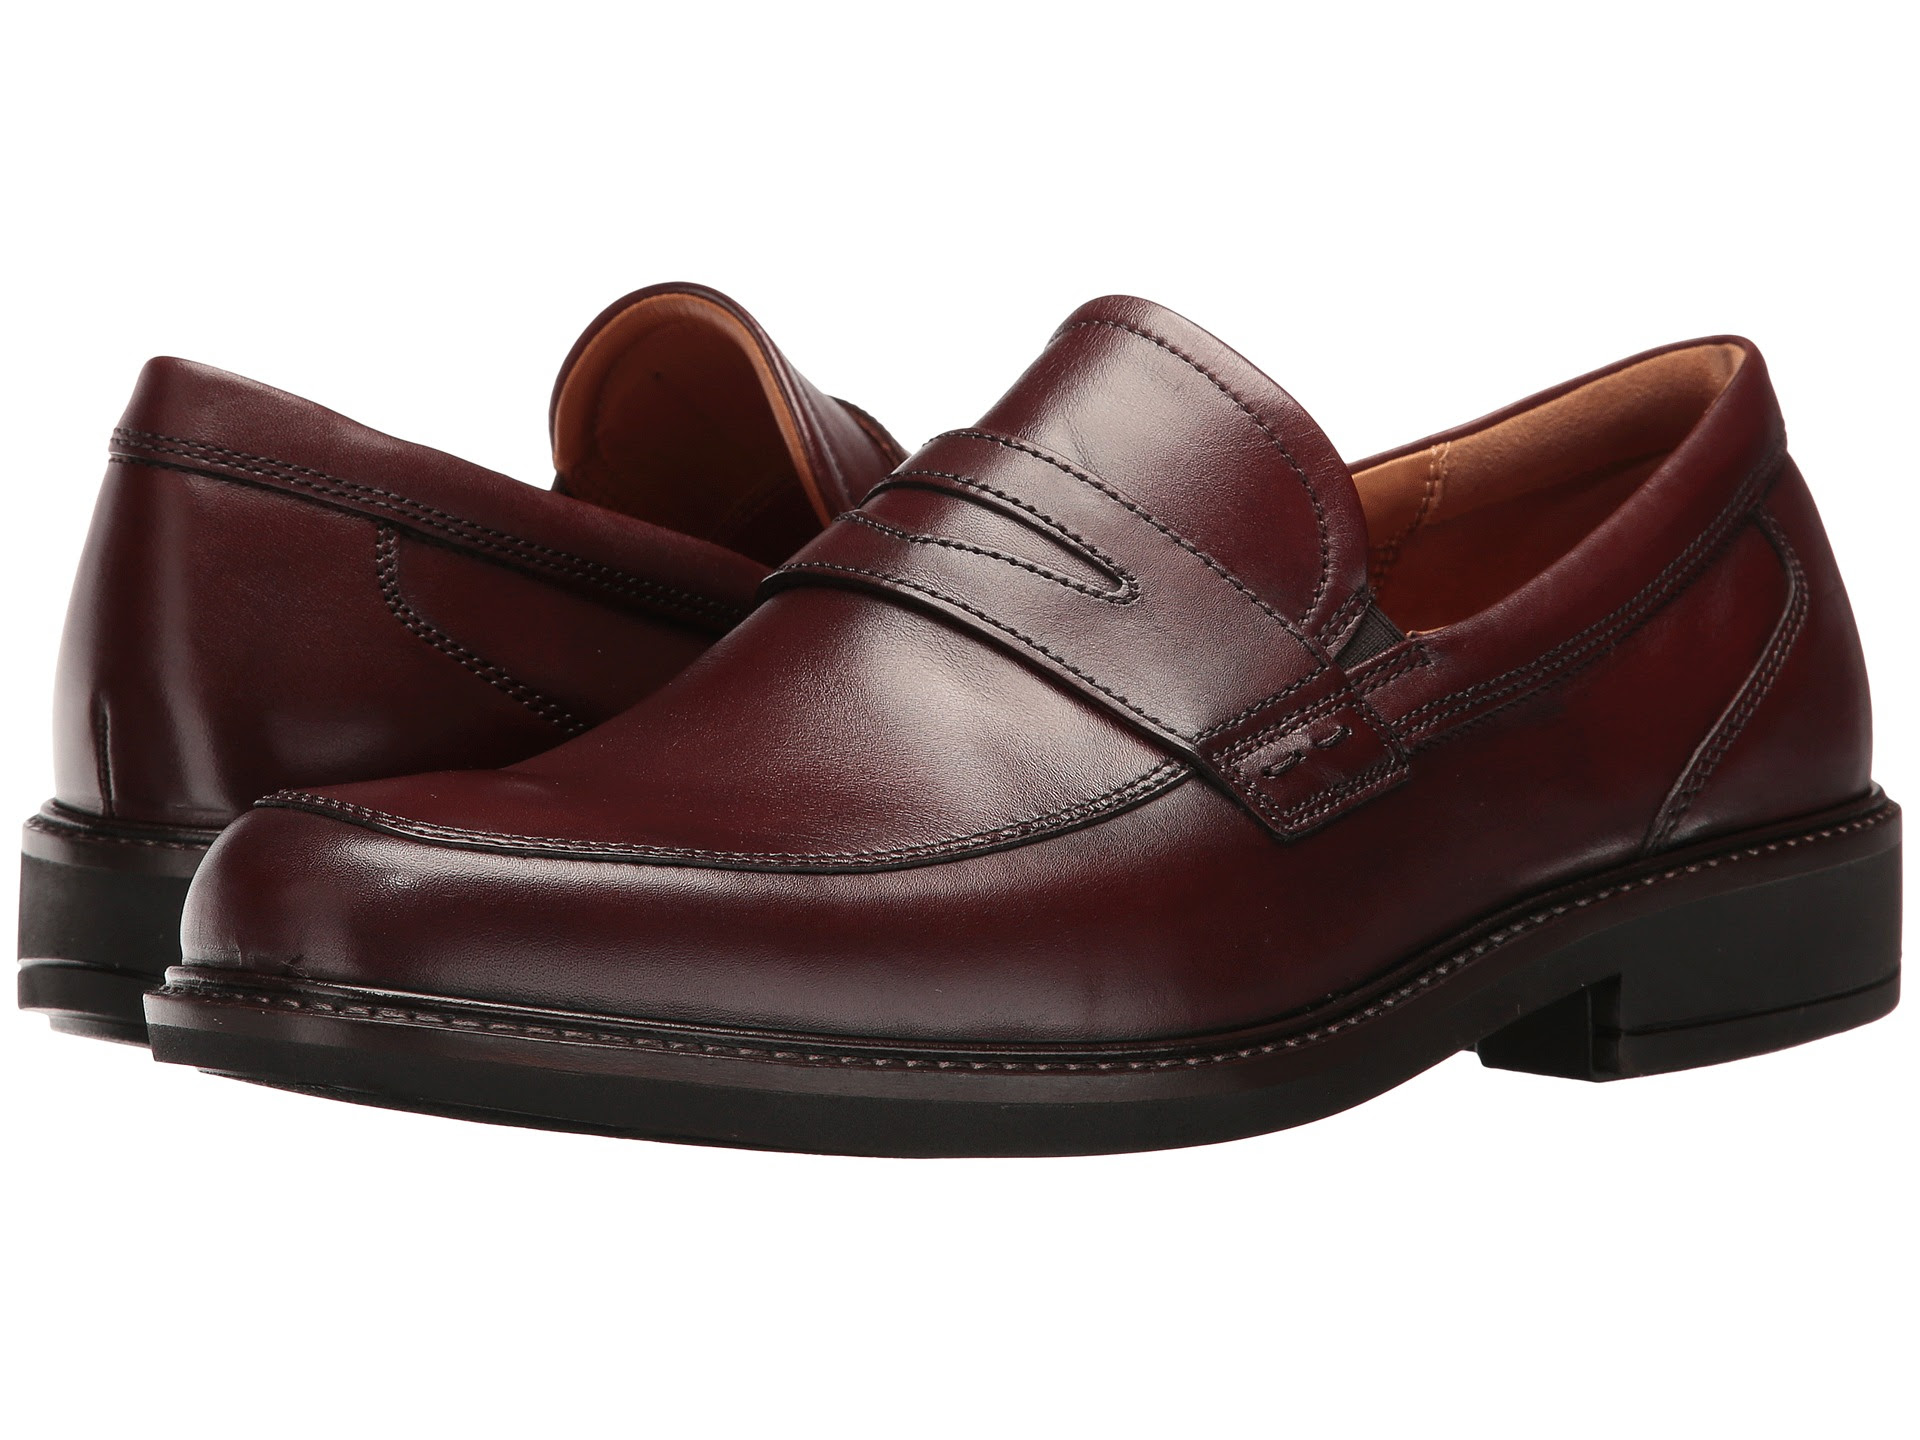 ECCO Holton Penny Loafer - Zappos.com Free Shipping BOTH Ways